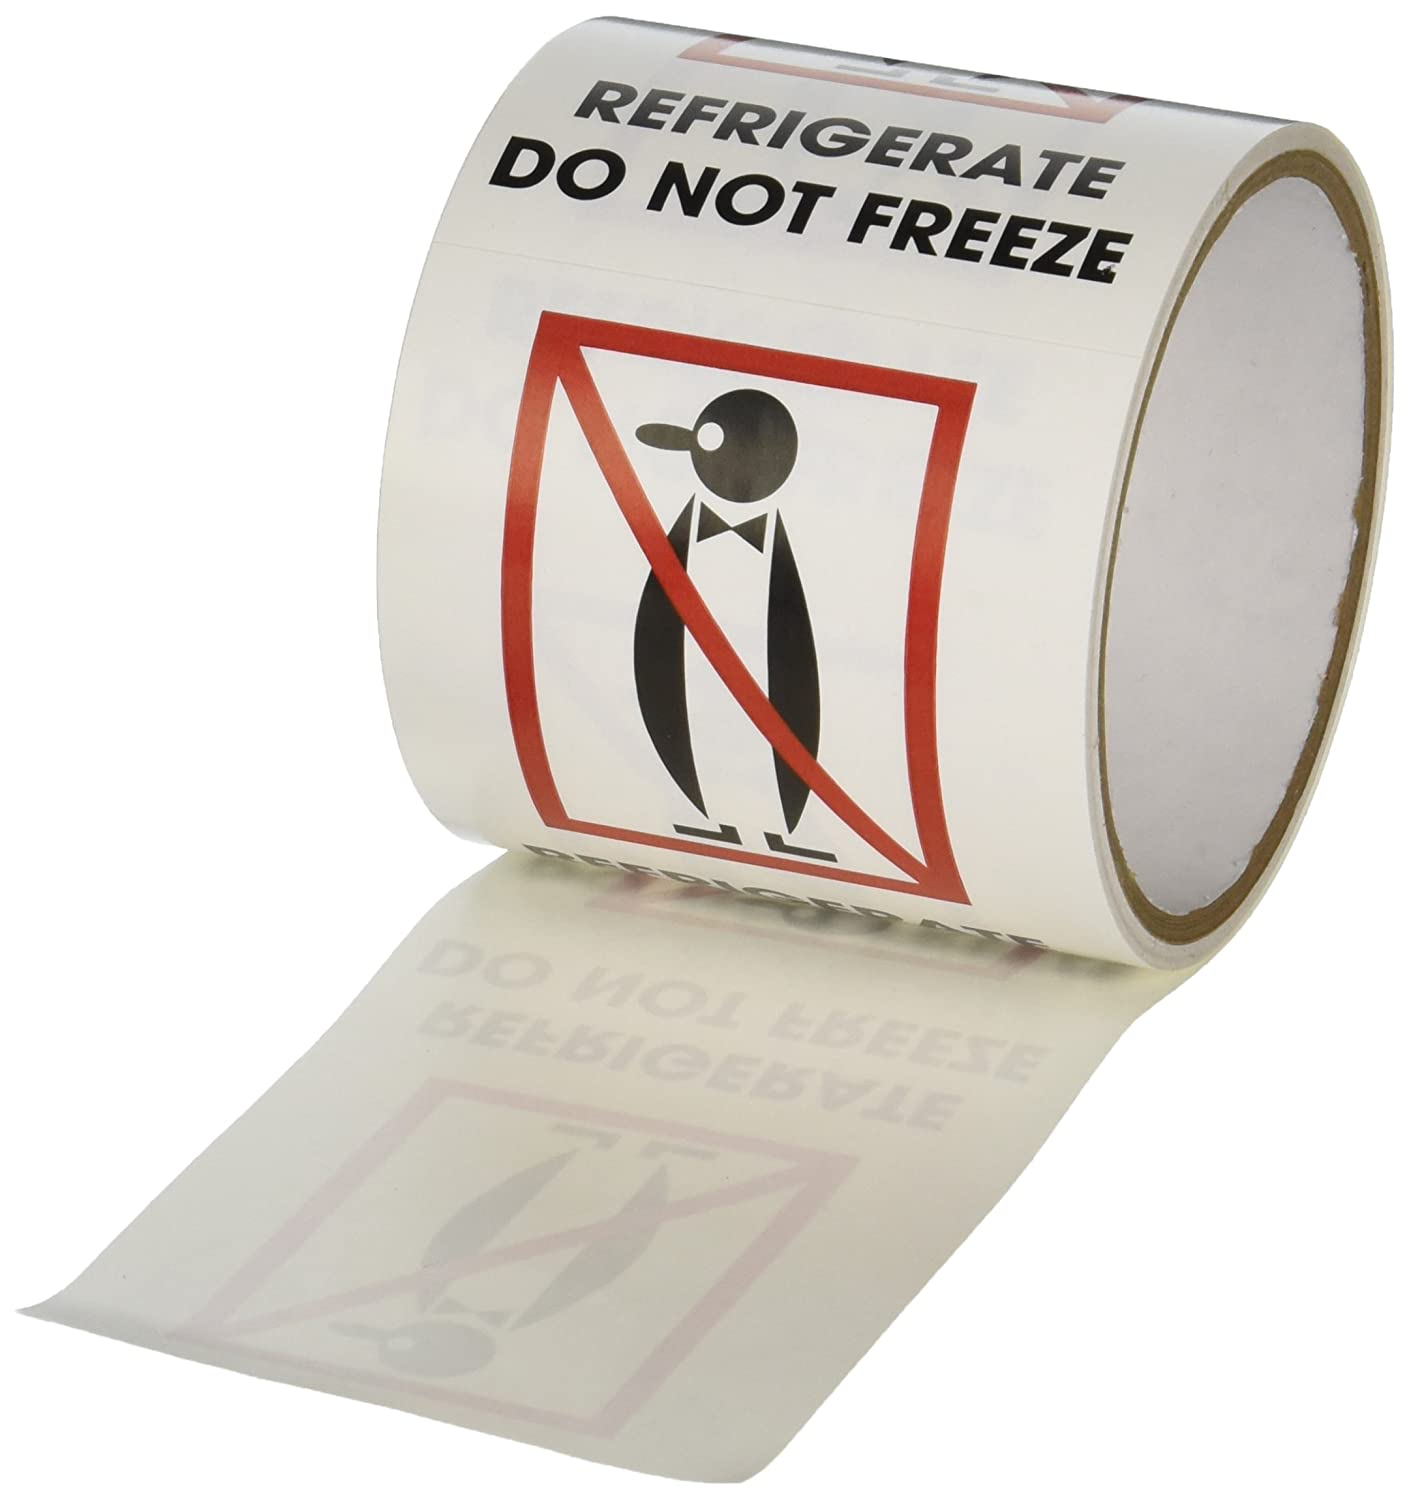 TapeCase SHIPLBL-081-50 Refrigerate, Do Not Freeze Label - 50 per pack